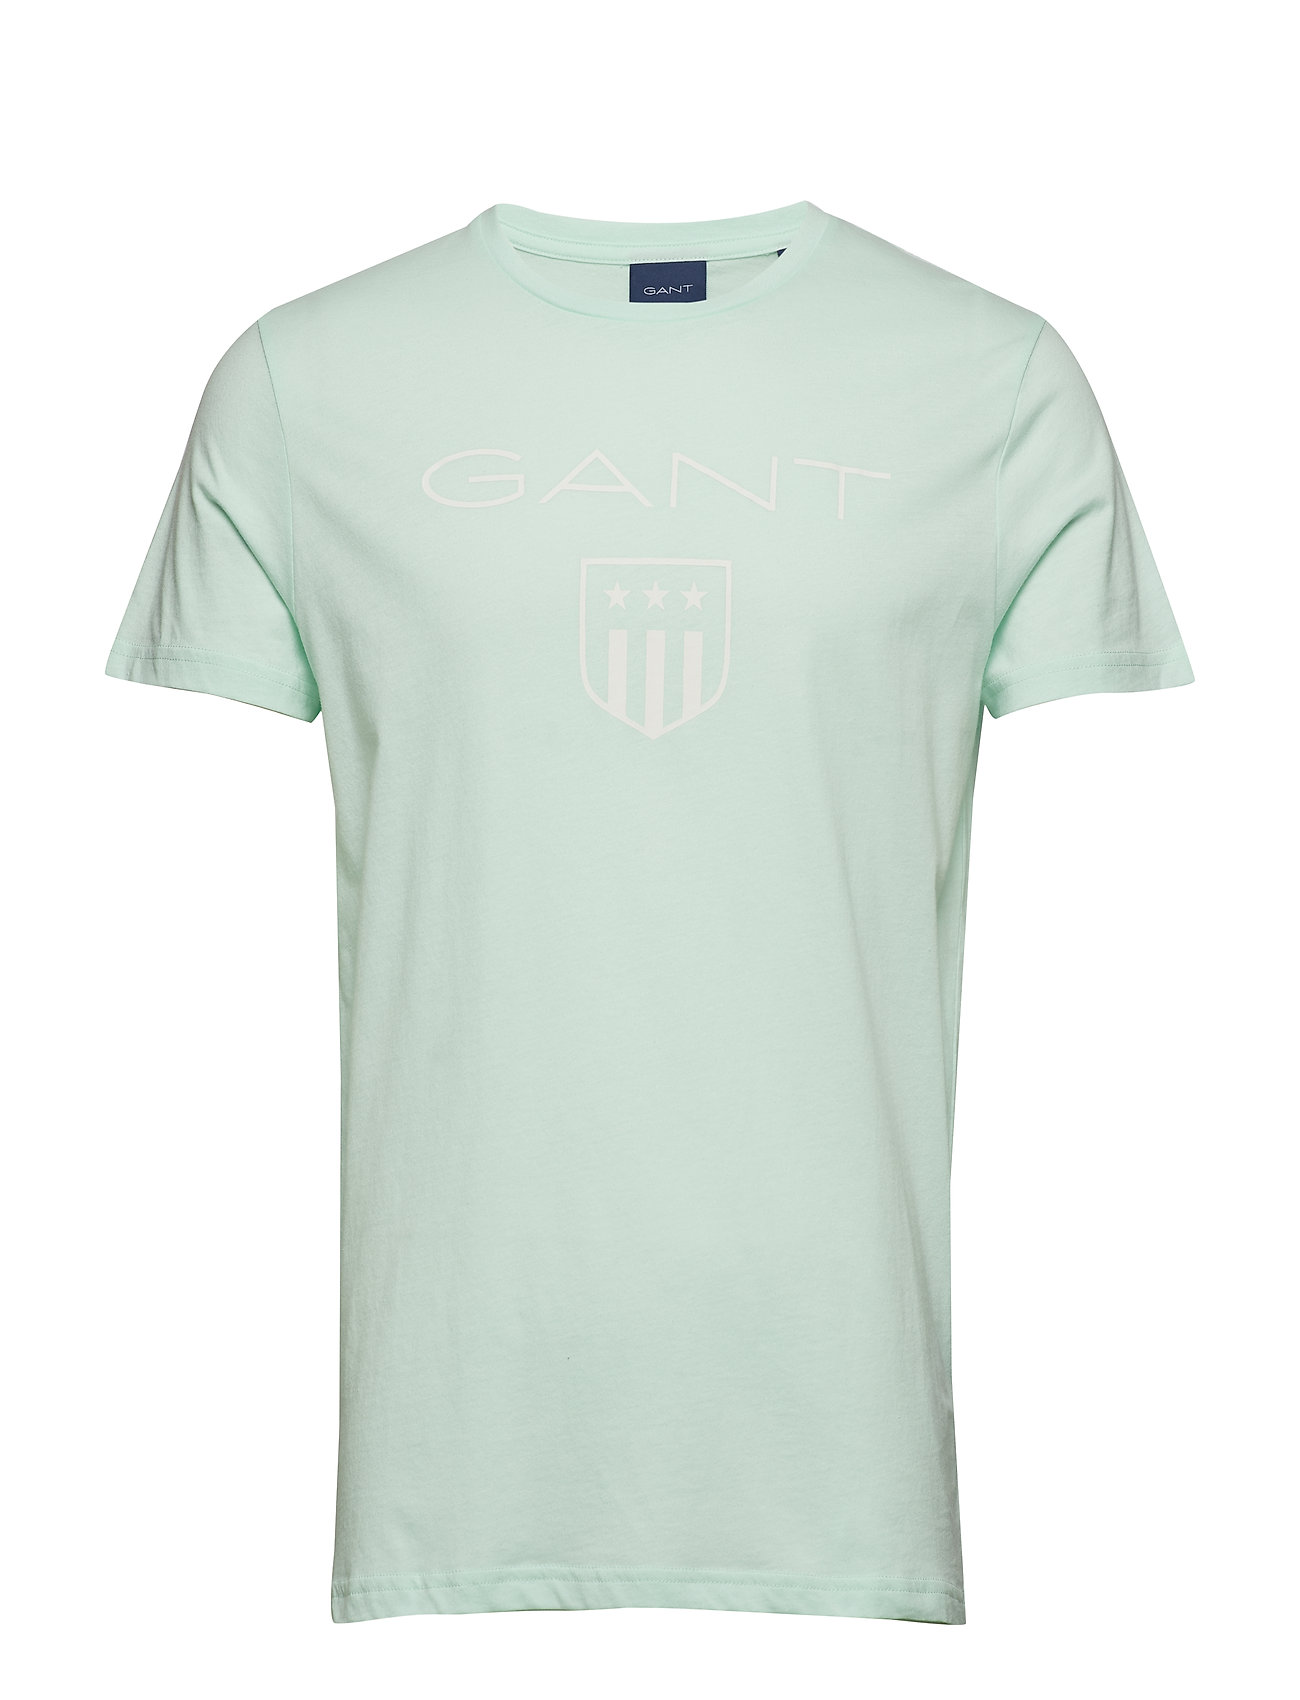 GANT O1. PRINTED GANT SHIELD SS T-SHIRT